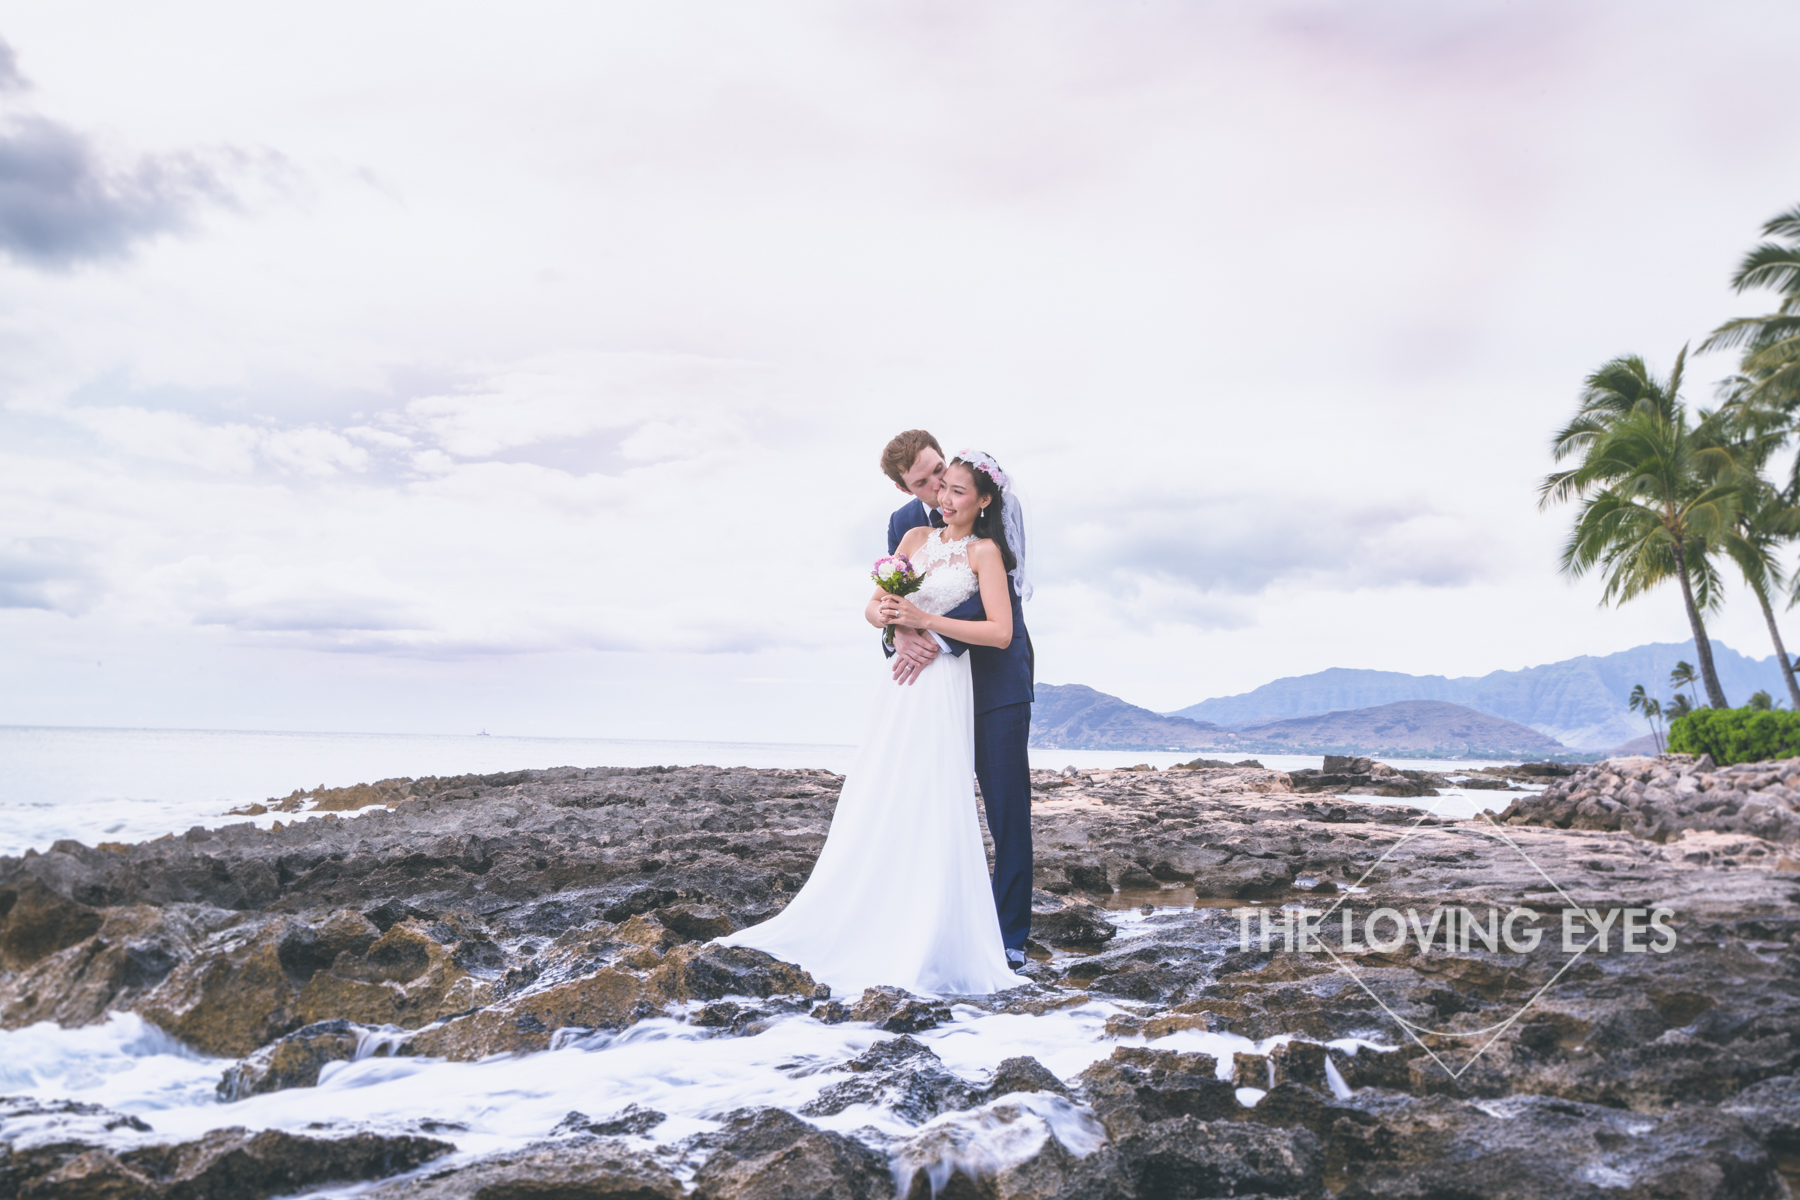 Bride and groom embracing in the waves during sunset at the lagoon near the Four Seasons Resort at Ko Olina